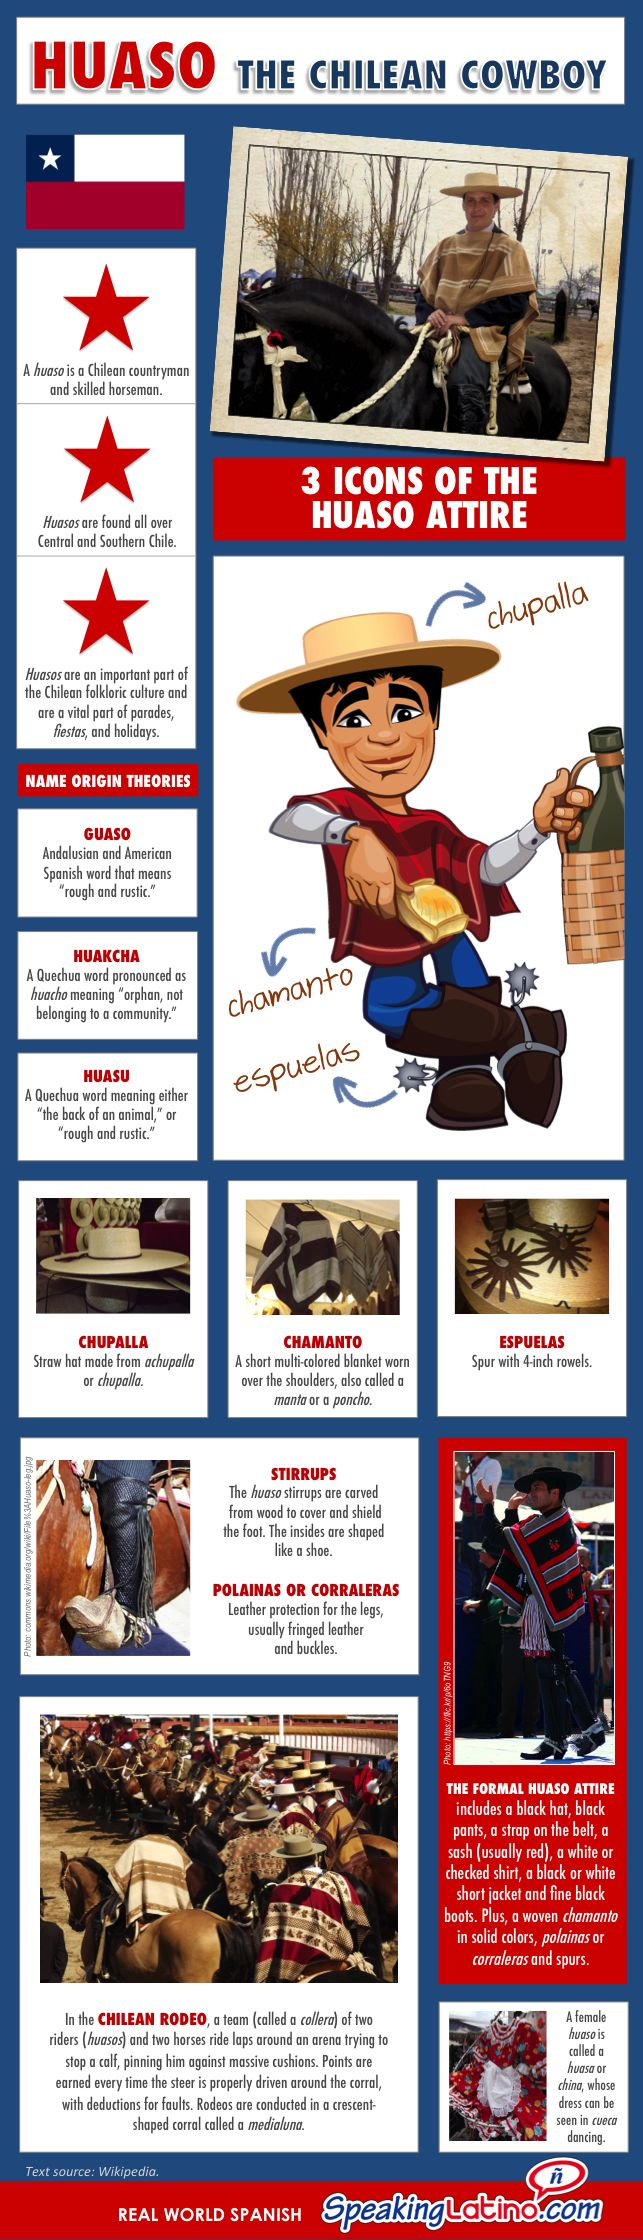 Huaso: The Chilean Cowboy Infographic